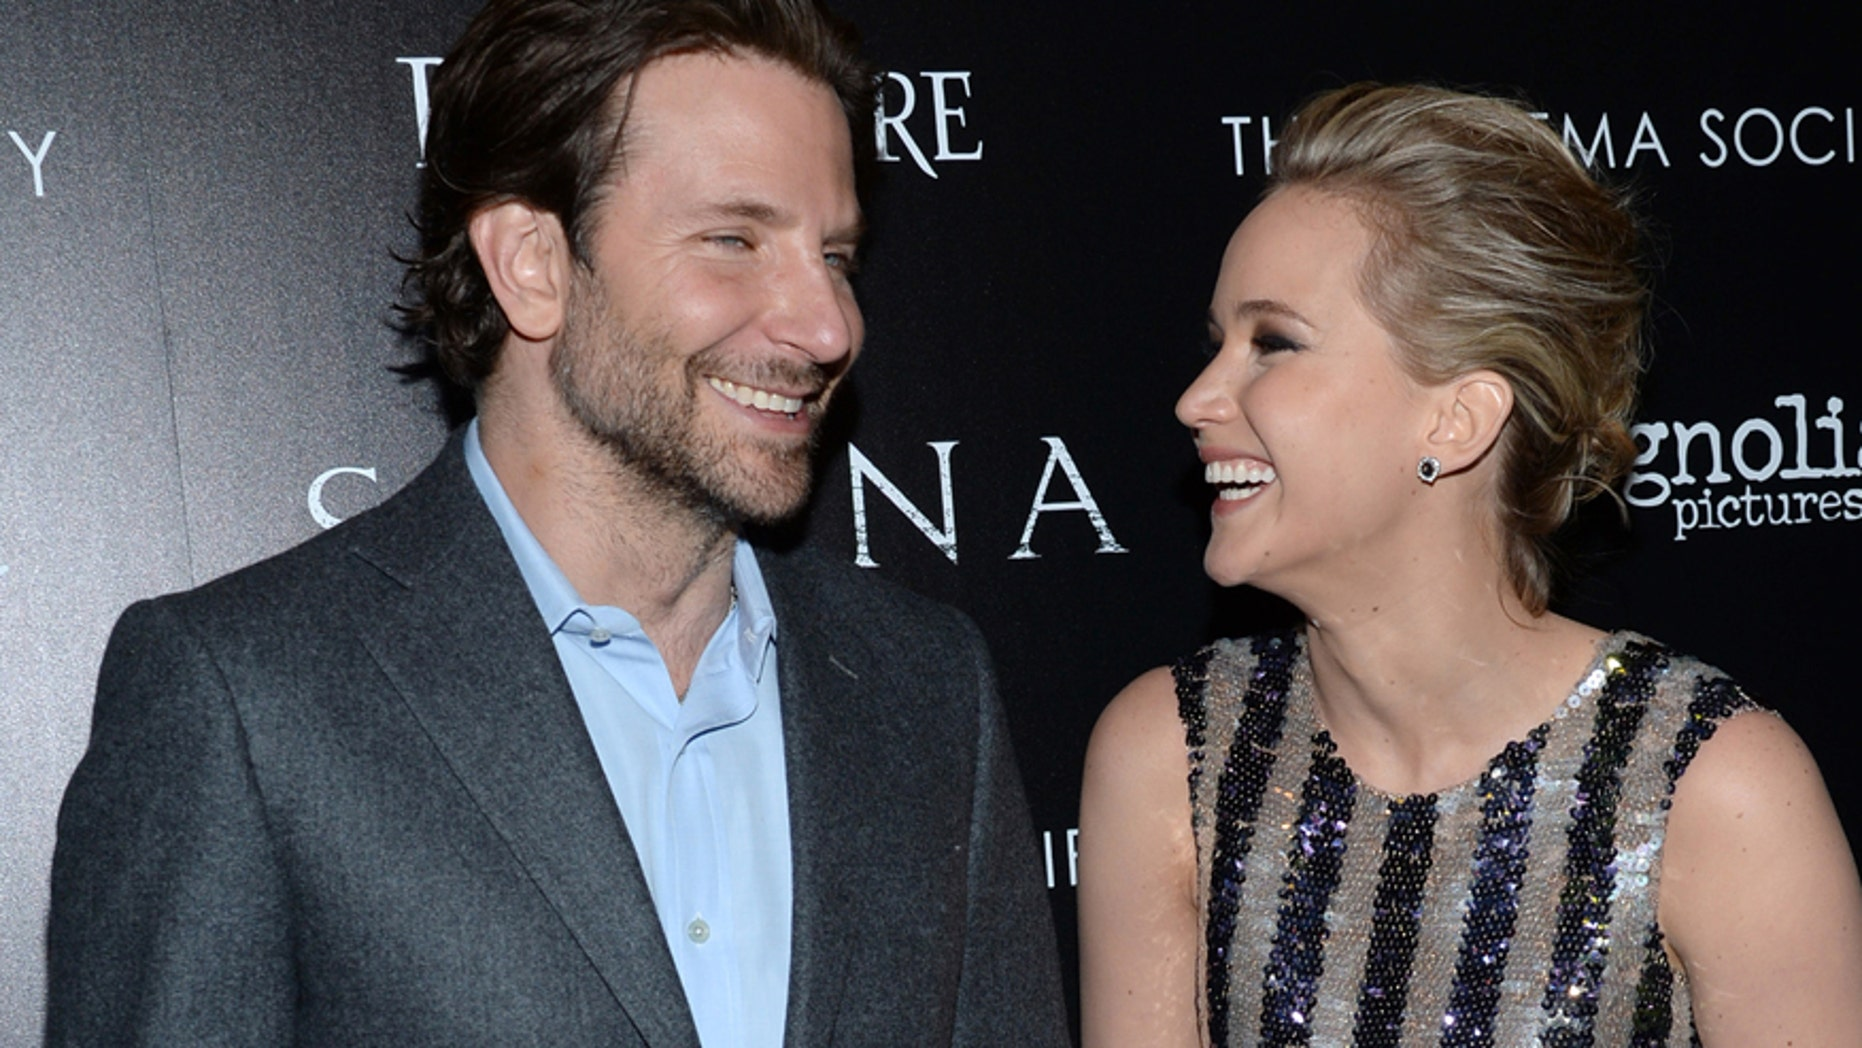 """Bradley Cooper, left, and Jennifer Lawrence arrive at a special screening of """"Serena"""", hosted by The Cinema Society and Dior Beauty, at the Landmark Sunshine Cinema on Saturday, March, 21, 2015, in New York. (Photo by Evan Agostini/Invision/AP)"""